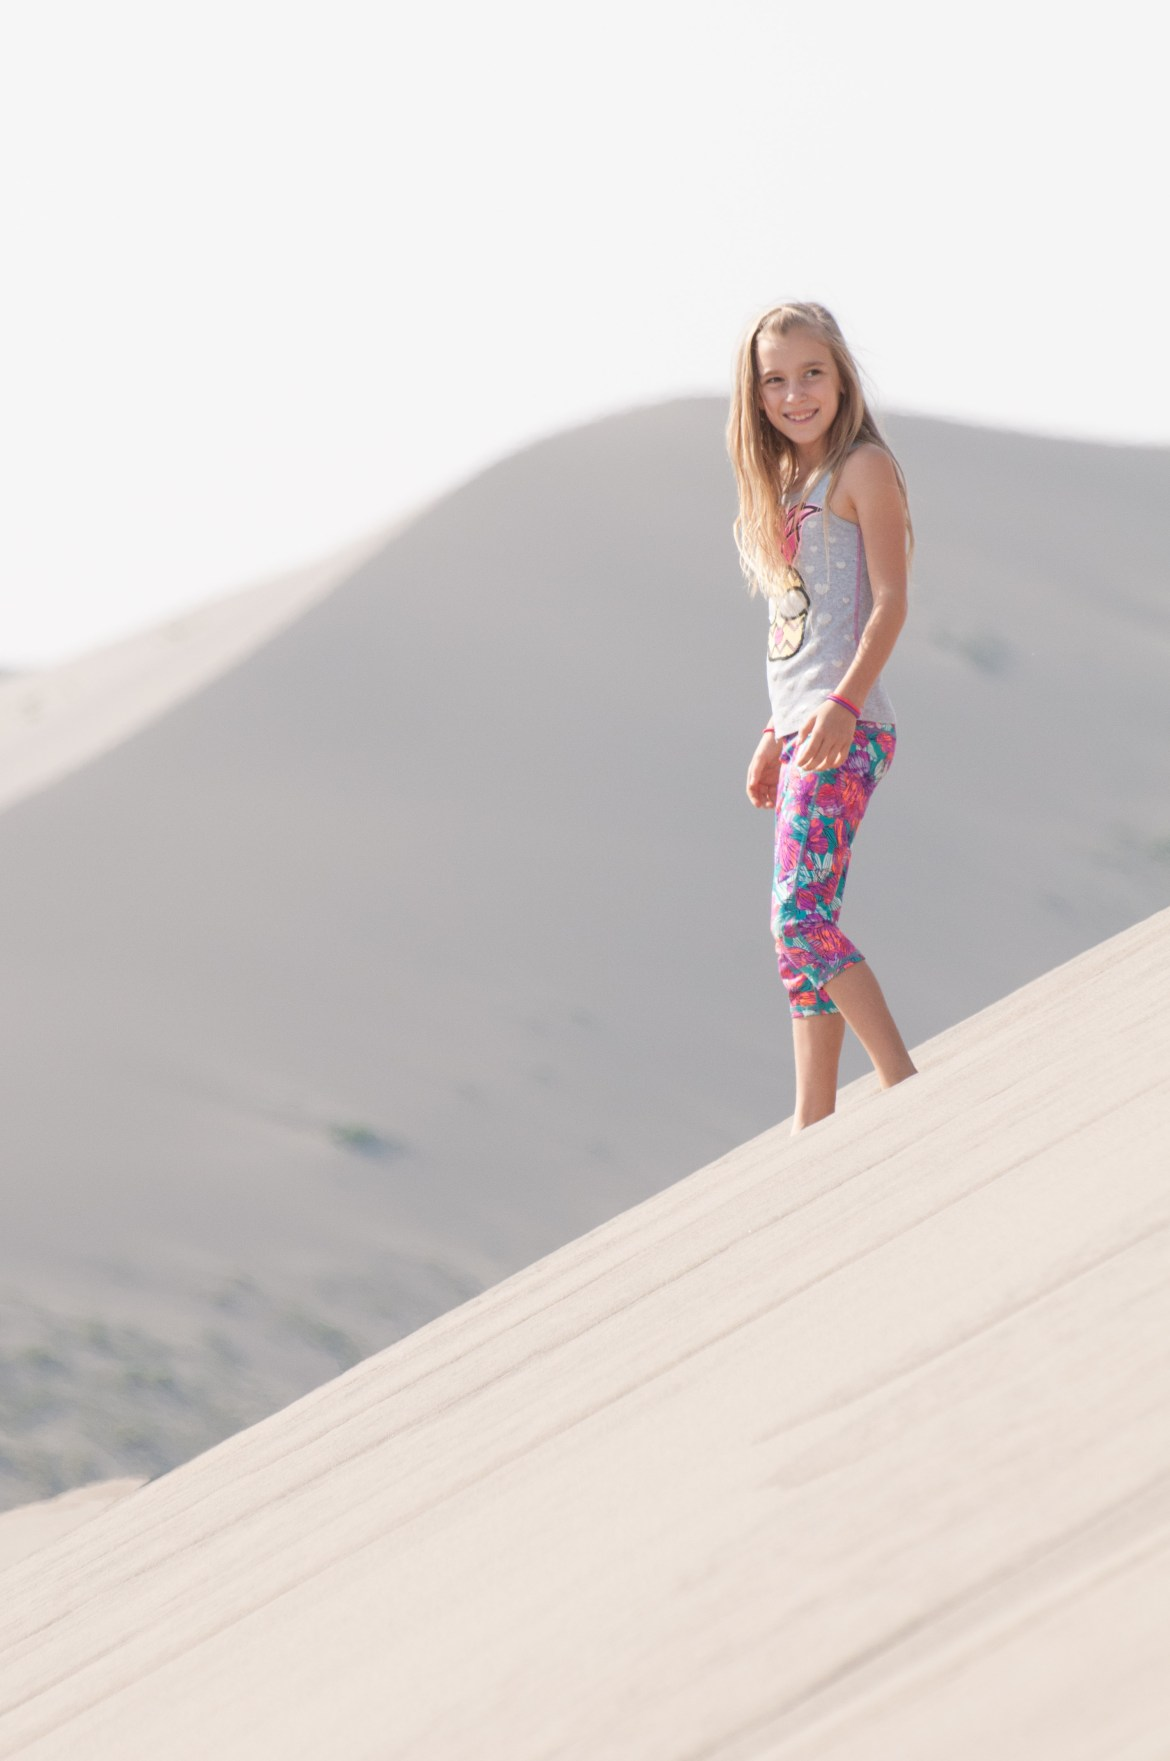 A young girl stands on a large sand dune at Southwest Idaho's Bruneau Sand Dunes State Park. The dunes are the largest free-standing sand dunes in North America.